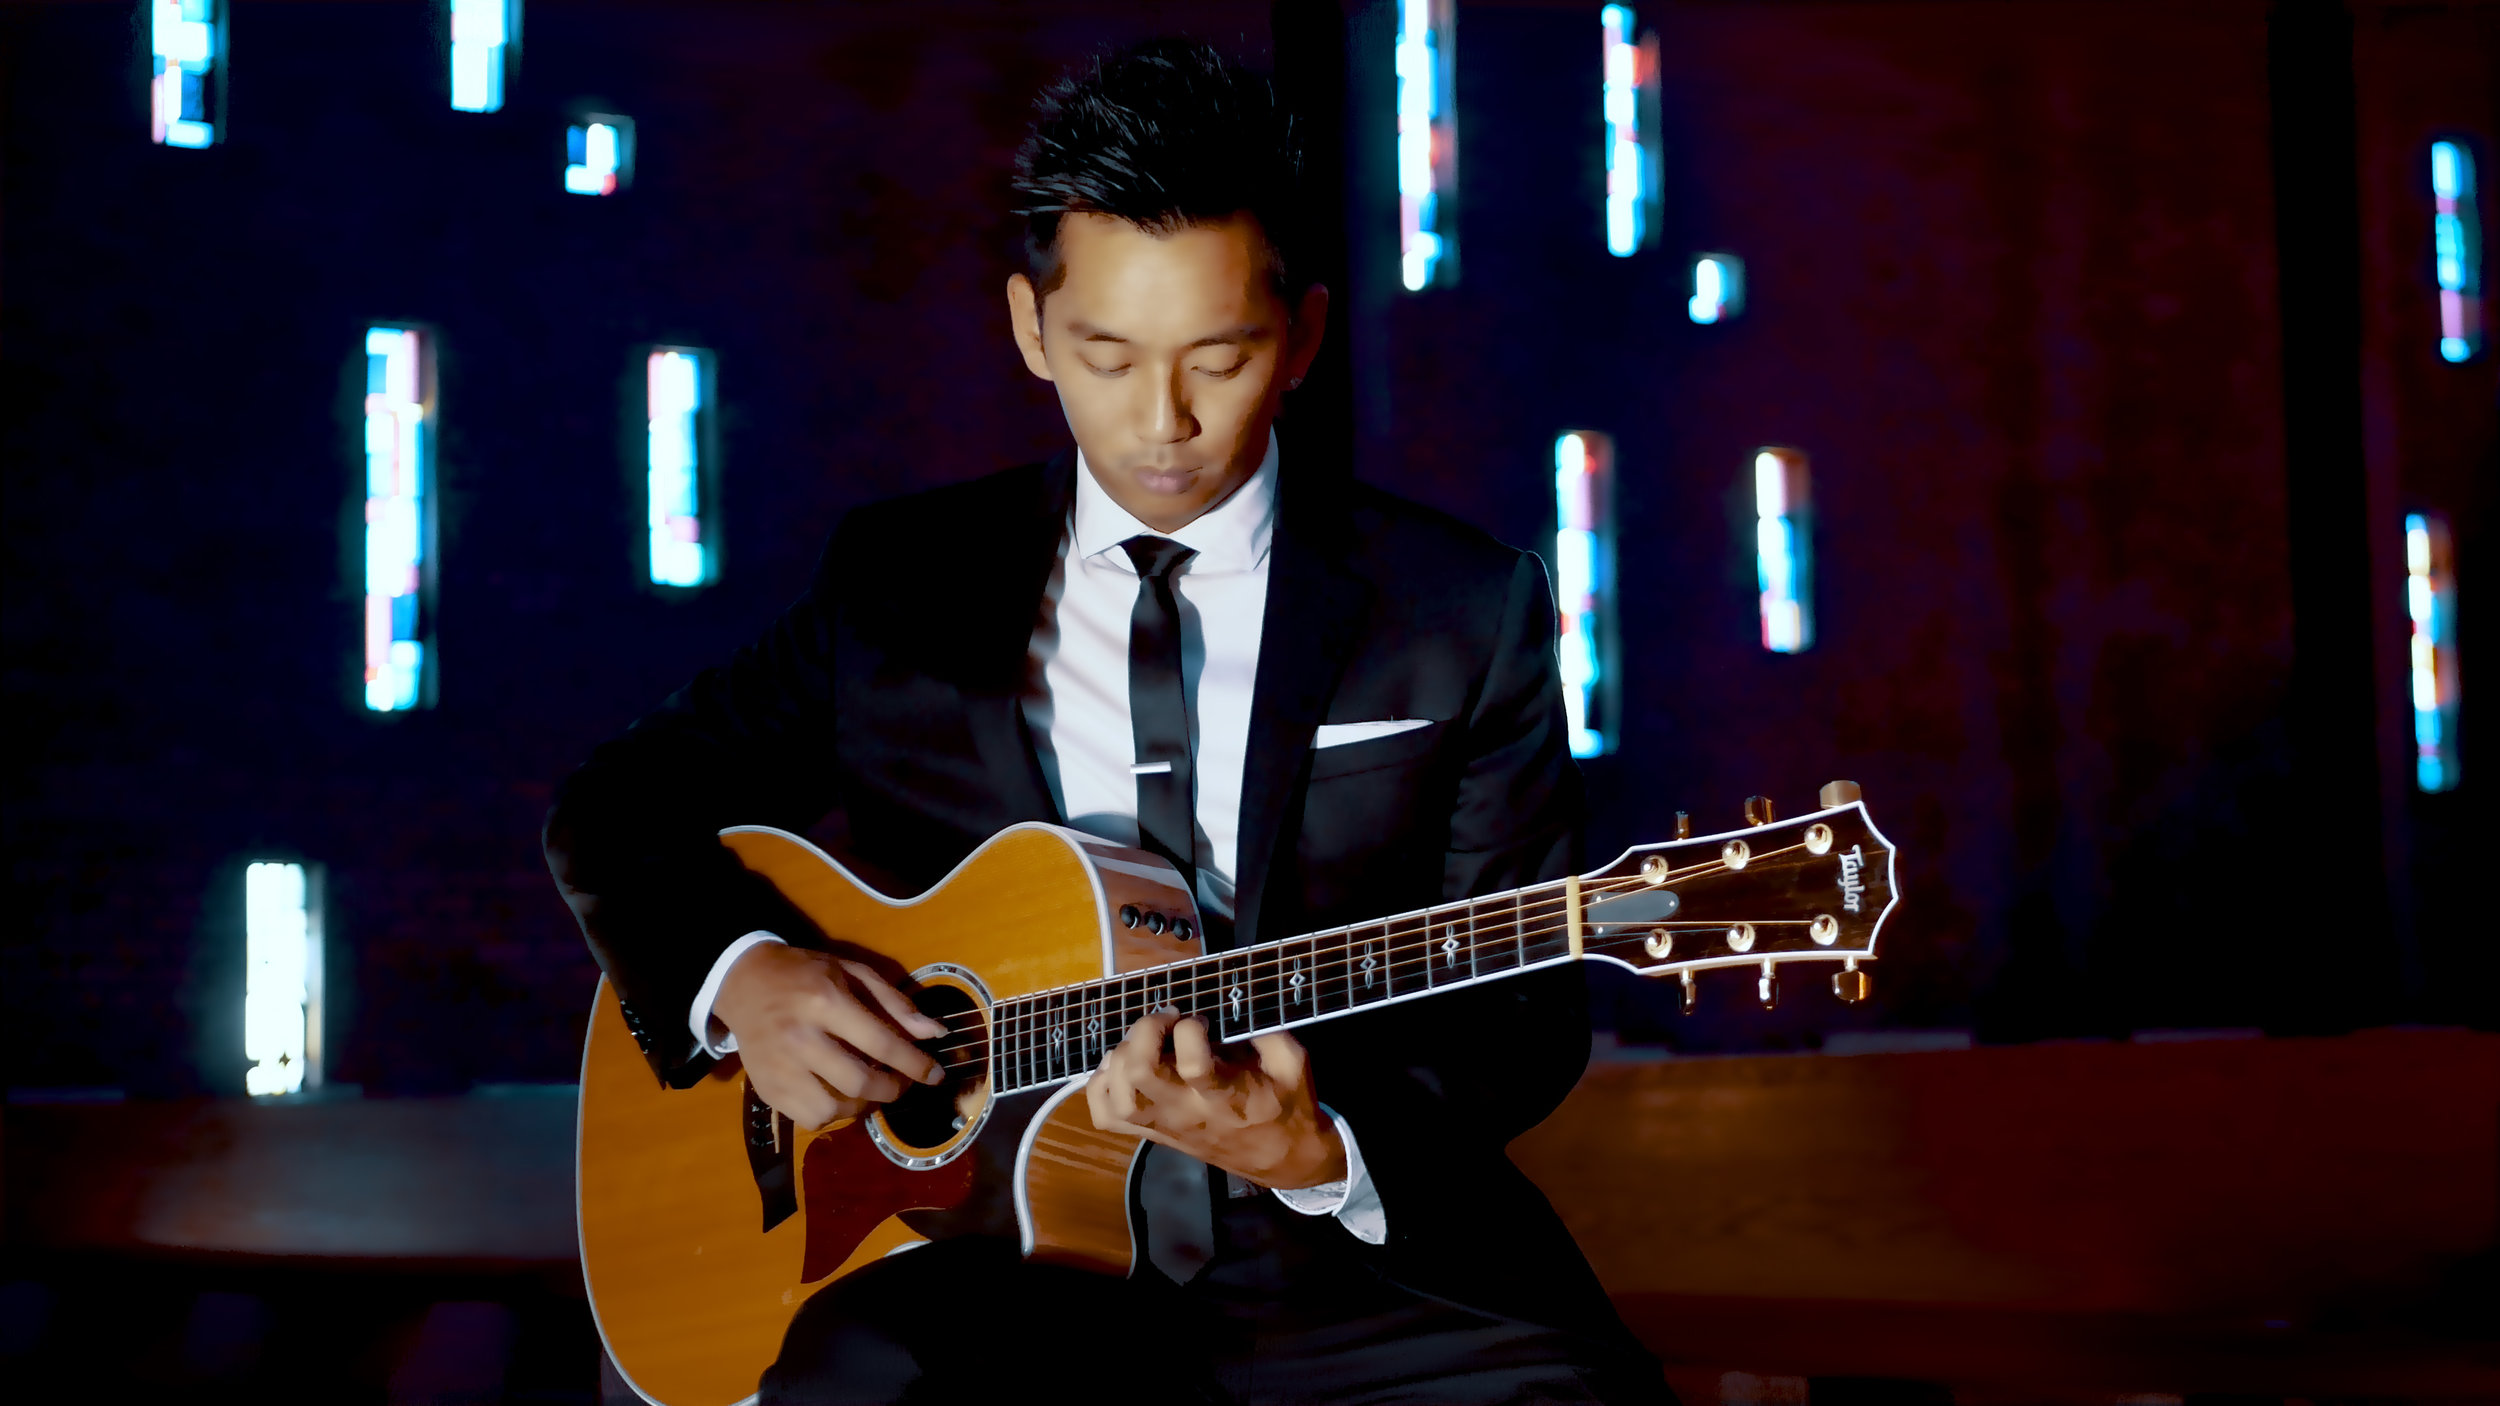 Intimate Acoustic Music - Plan your perfect event